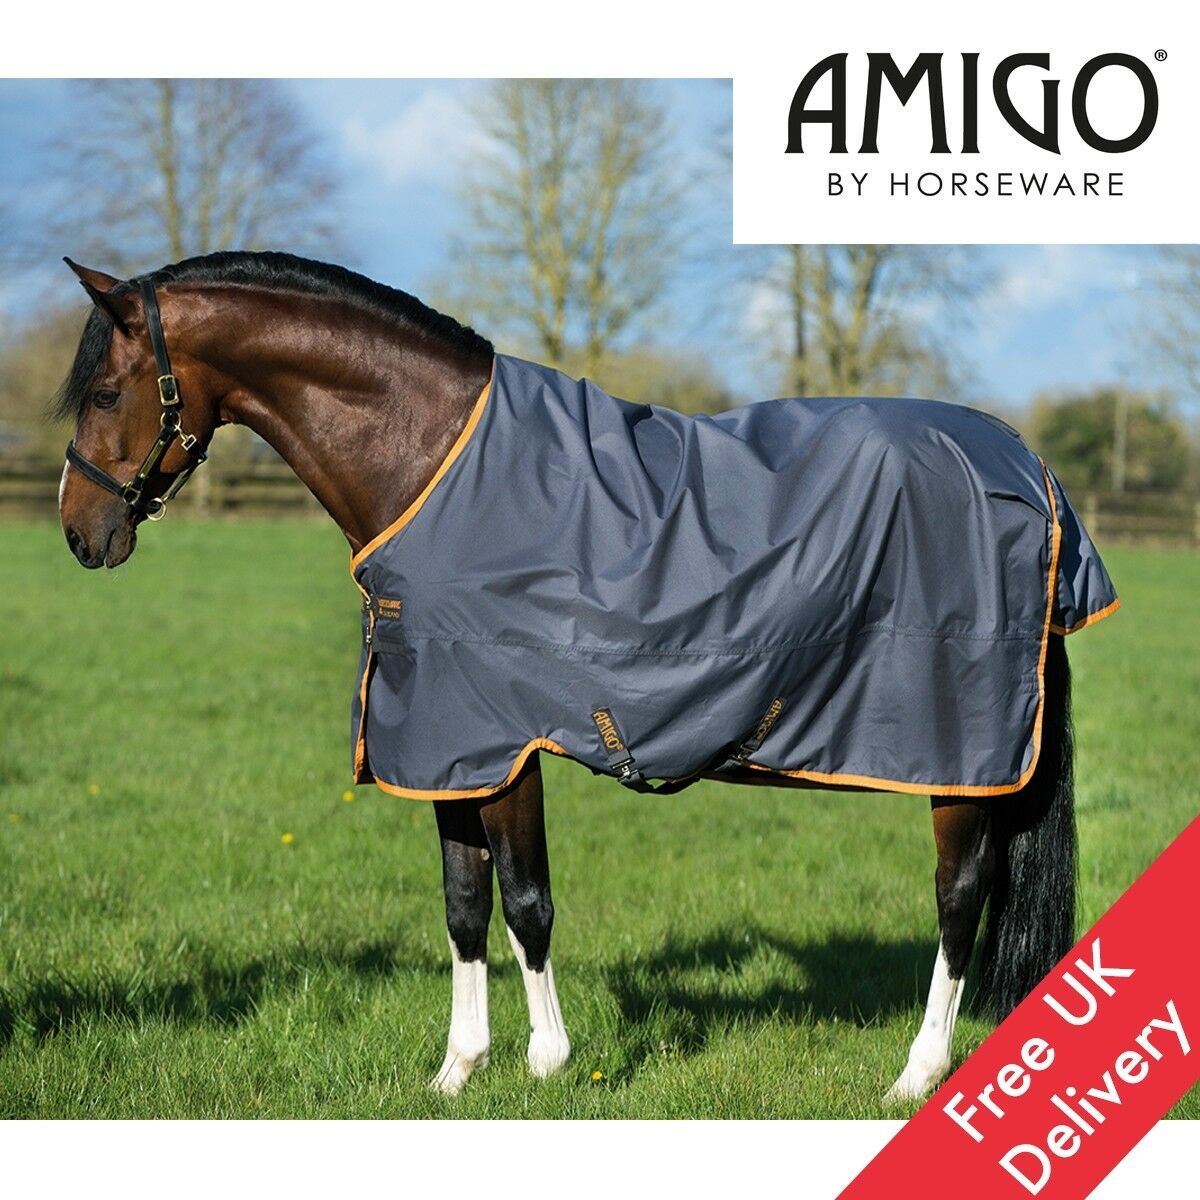 Horseware Amigo Pony Hero 6 Lite Lightweight Turnout (0g)